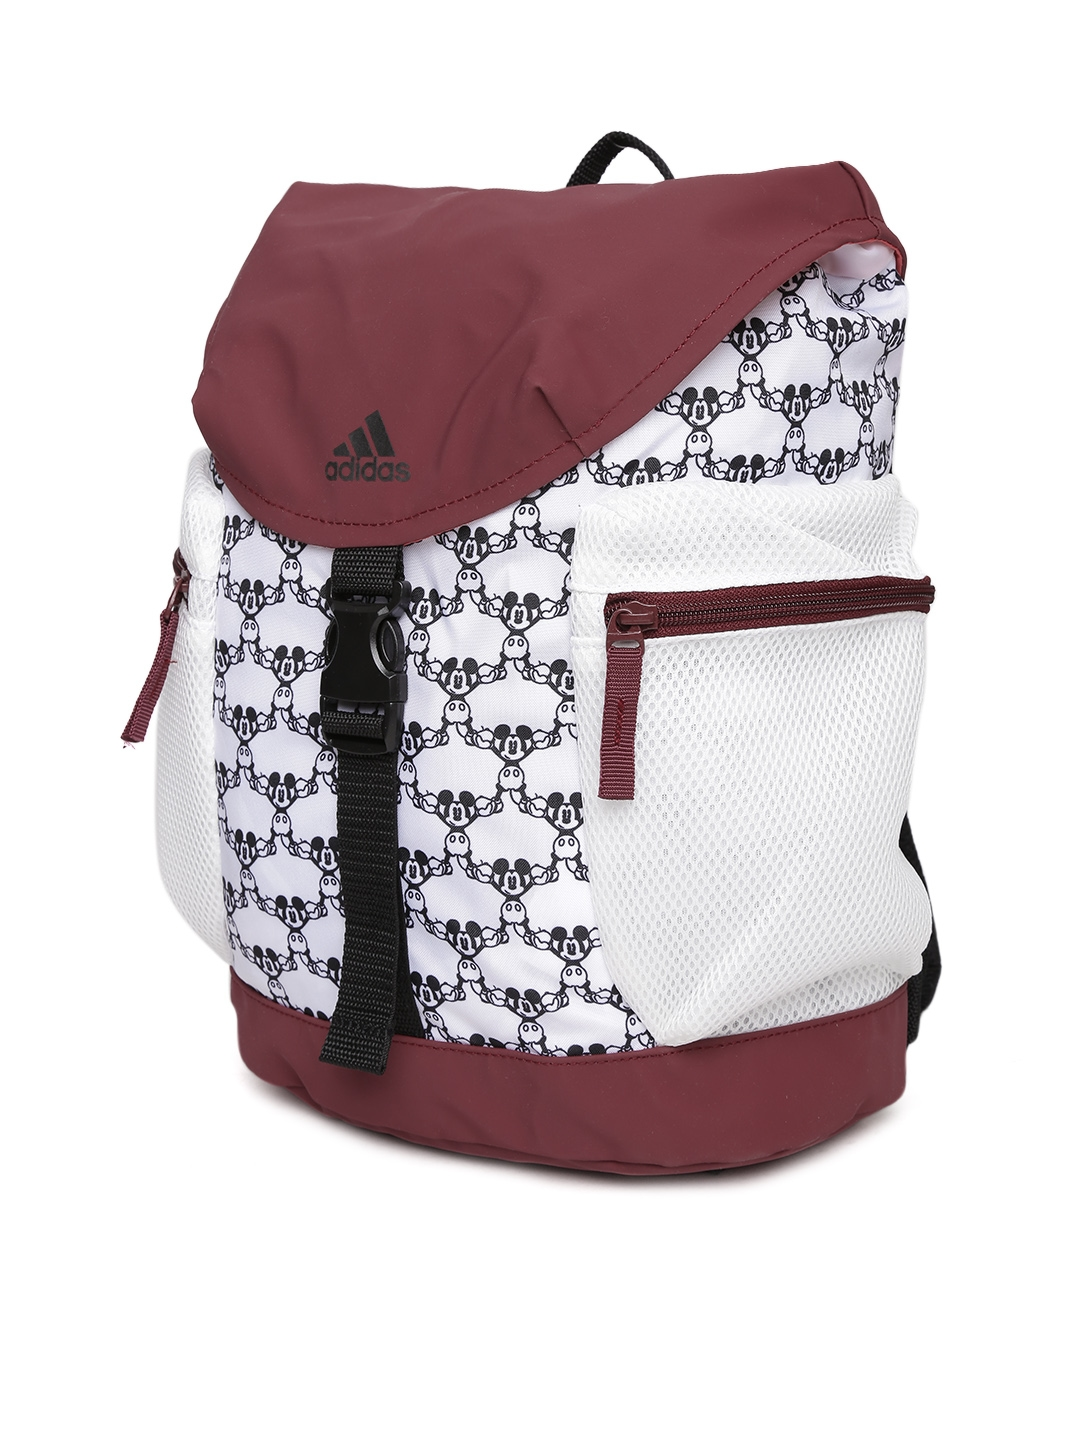 e33d4a3305bc Buy ADIDAS Kids White Disney Mouse Printed Backpack - Backpacks for ...